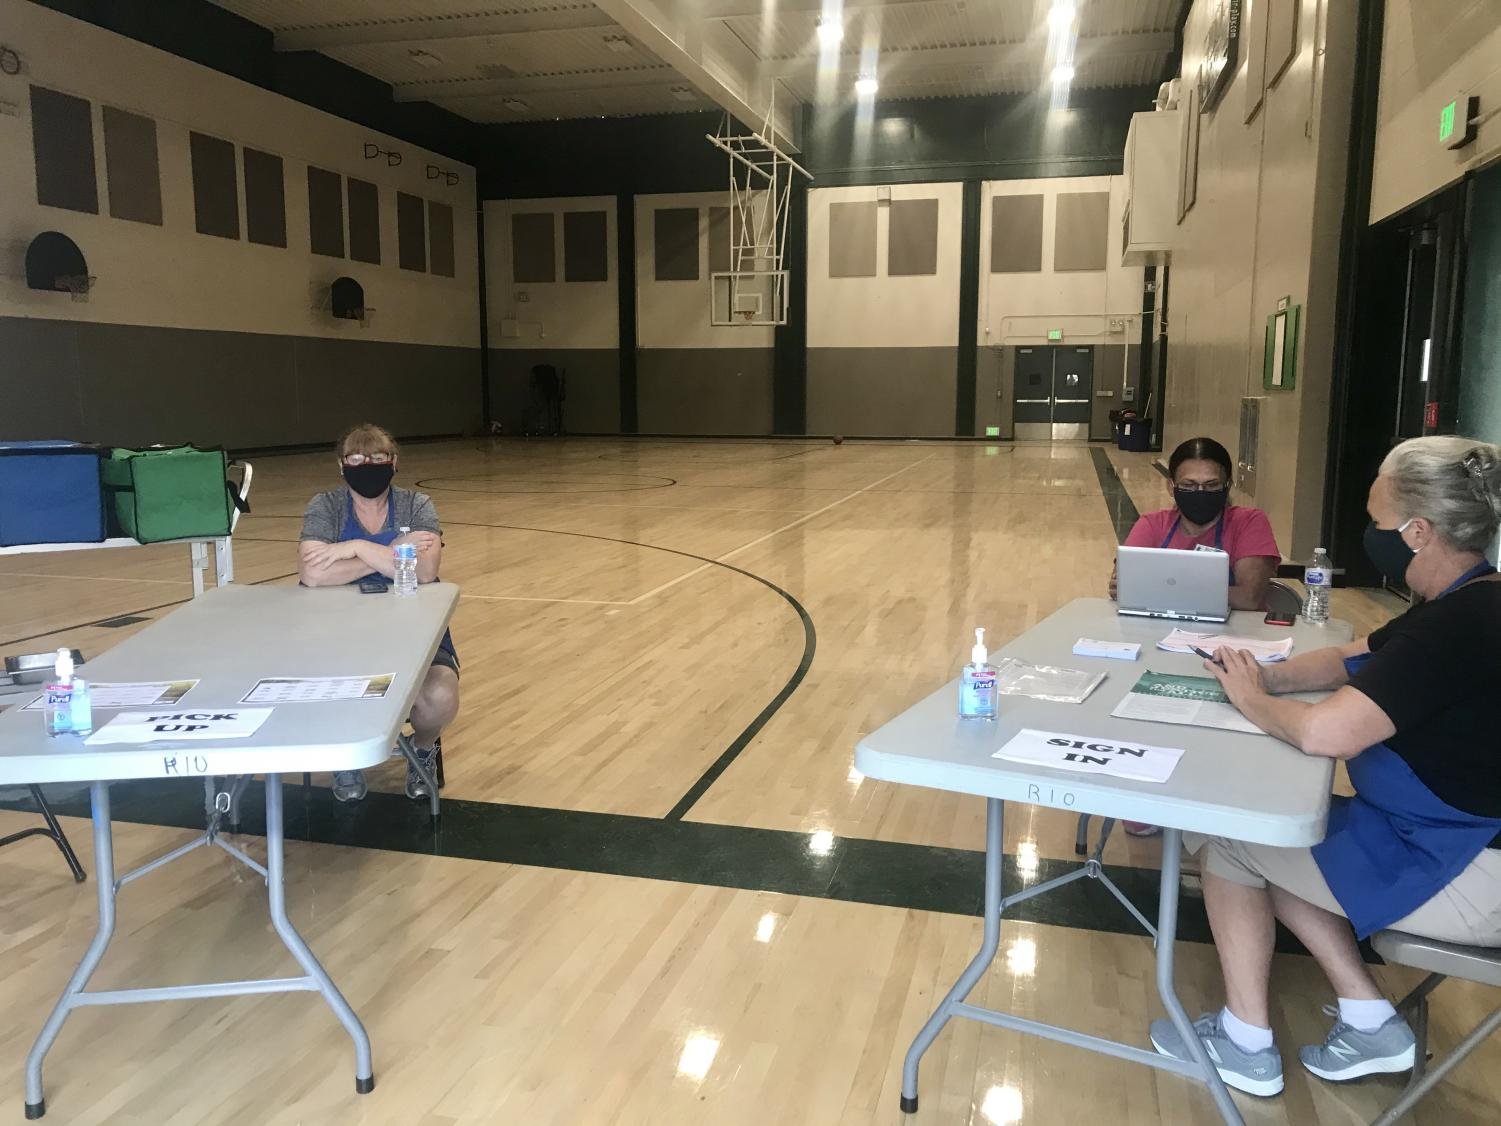 Nutrition services waits for customers in the small gymnasium. Meal services are available Monday through Friday in the mornings.